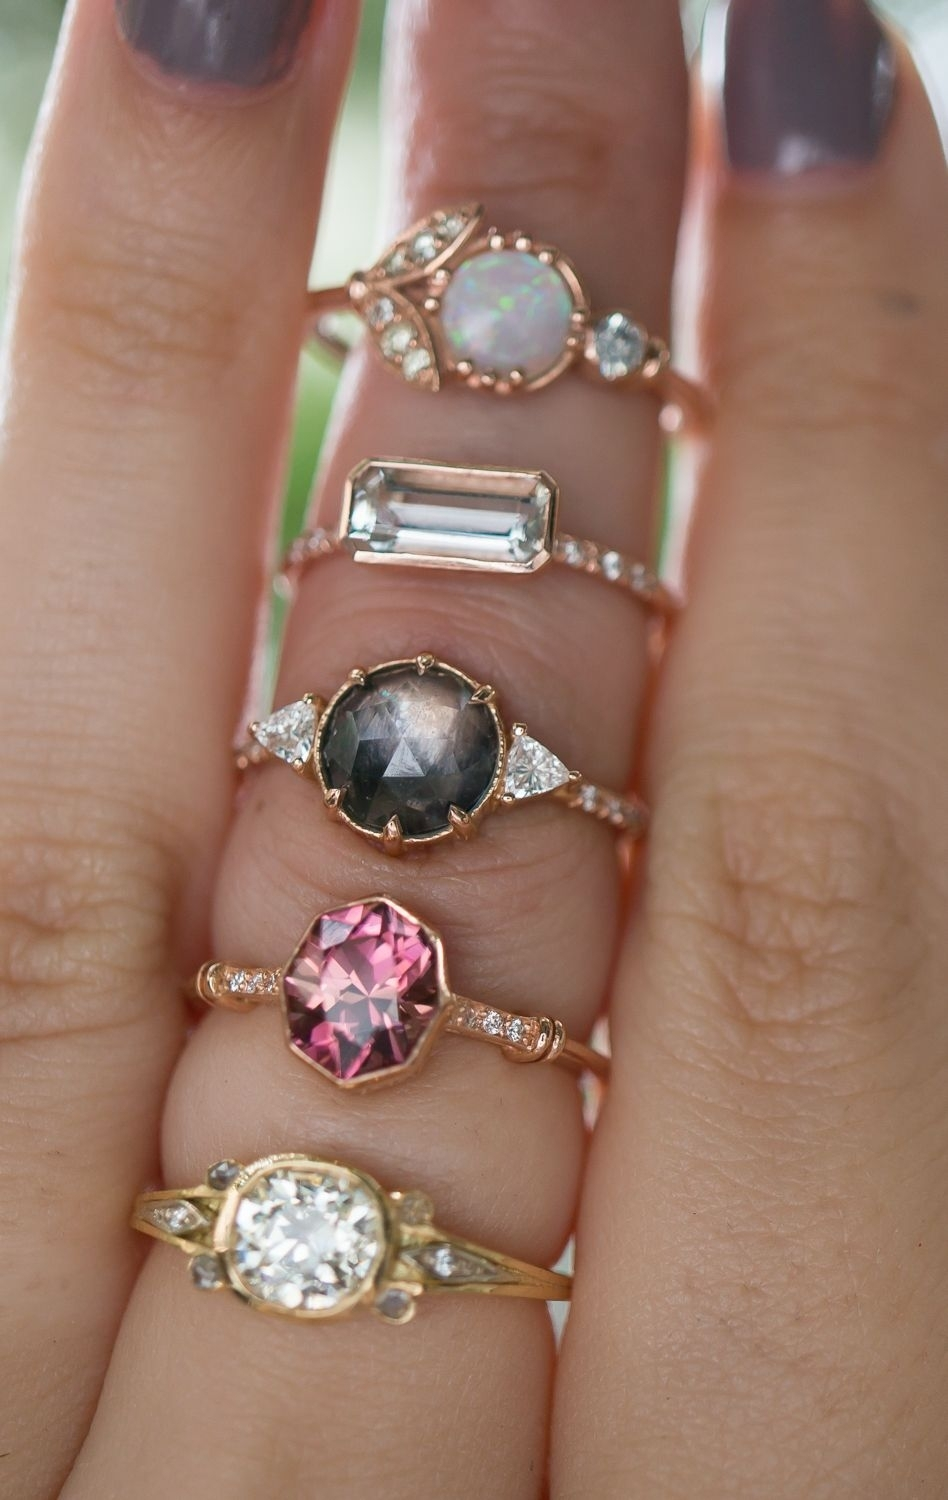 Non Traditional Vintage Inspired Engagement Ring Styles! | Gorgeous Within Most Recent Vintage Style Non Diamond Engagement Rings (Gallery 3 of 15)